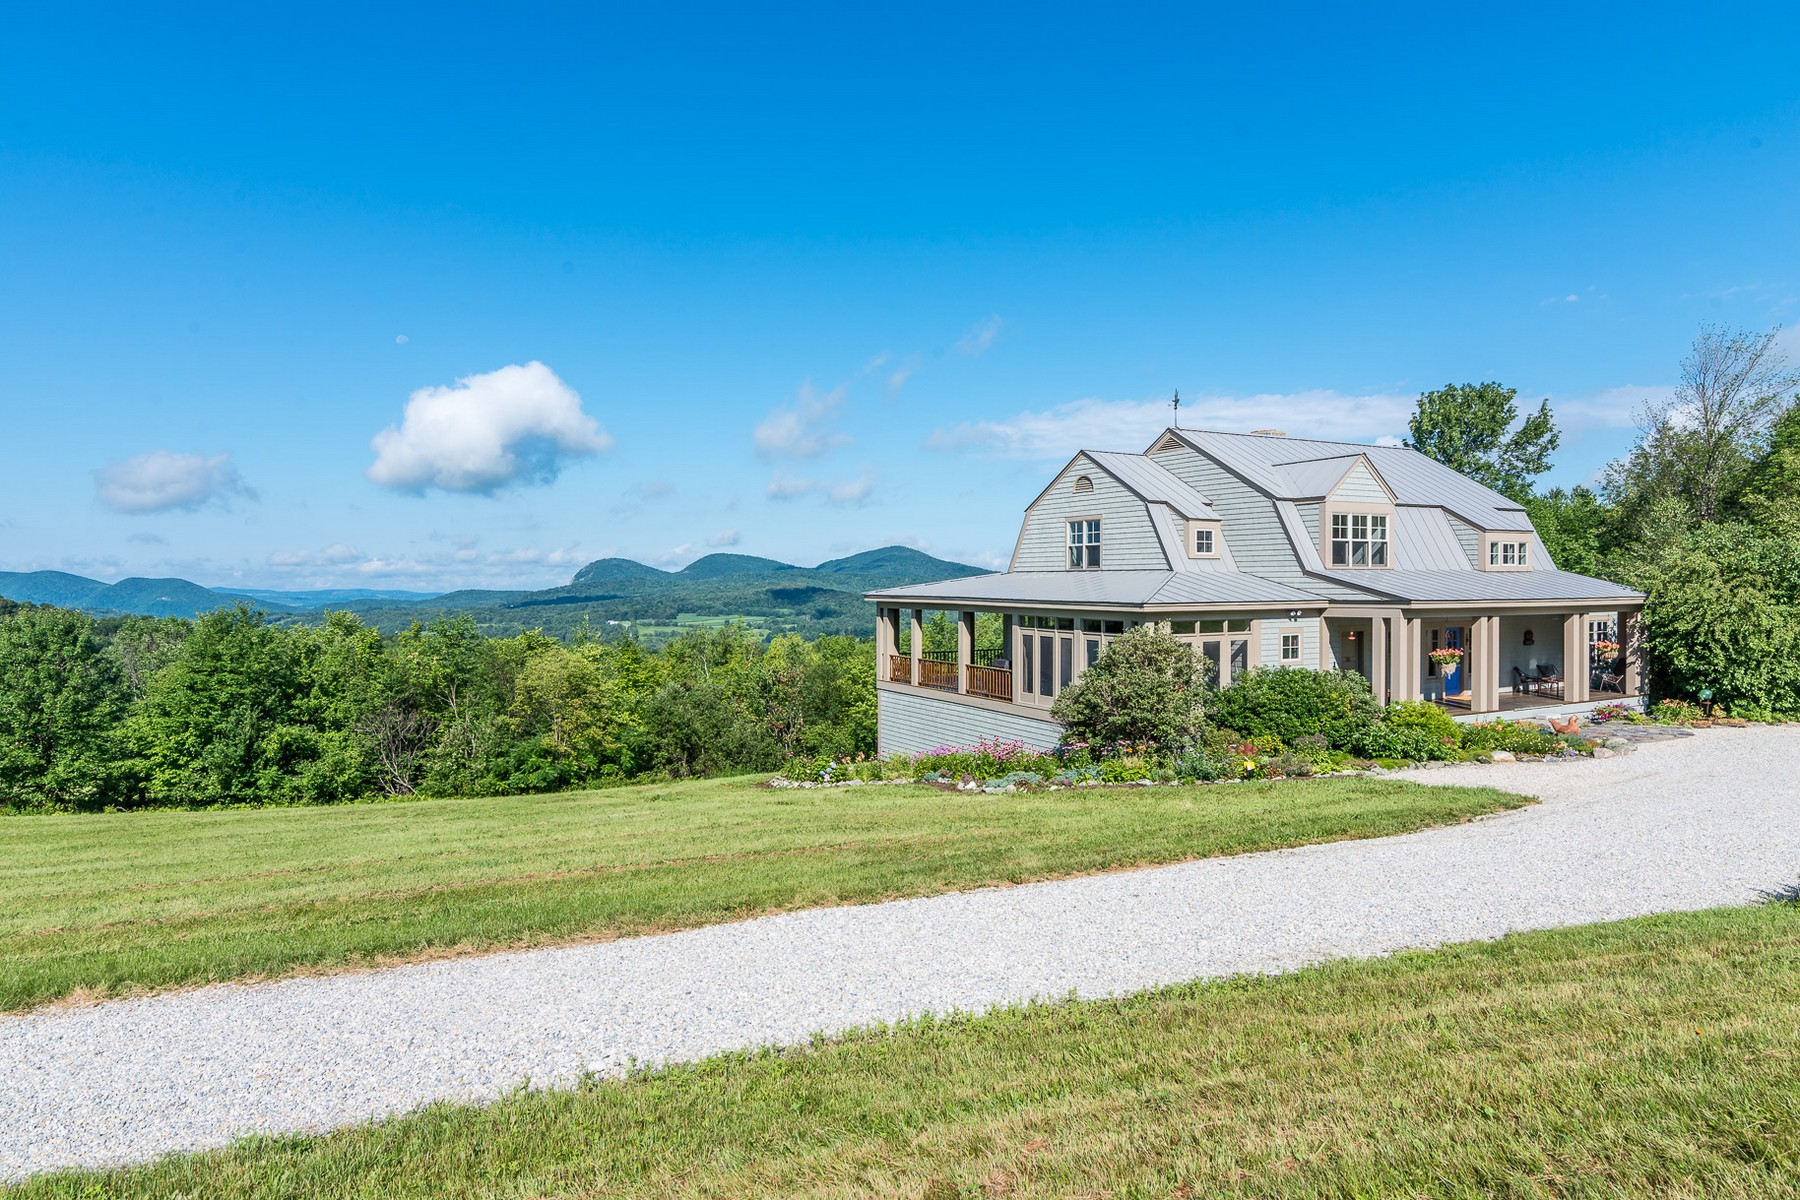 1638 Lilly Hill Rd, Pawlet, VT 05761